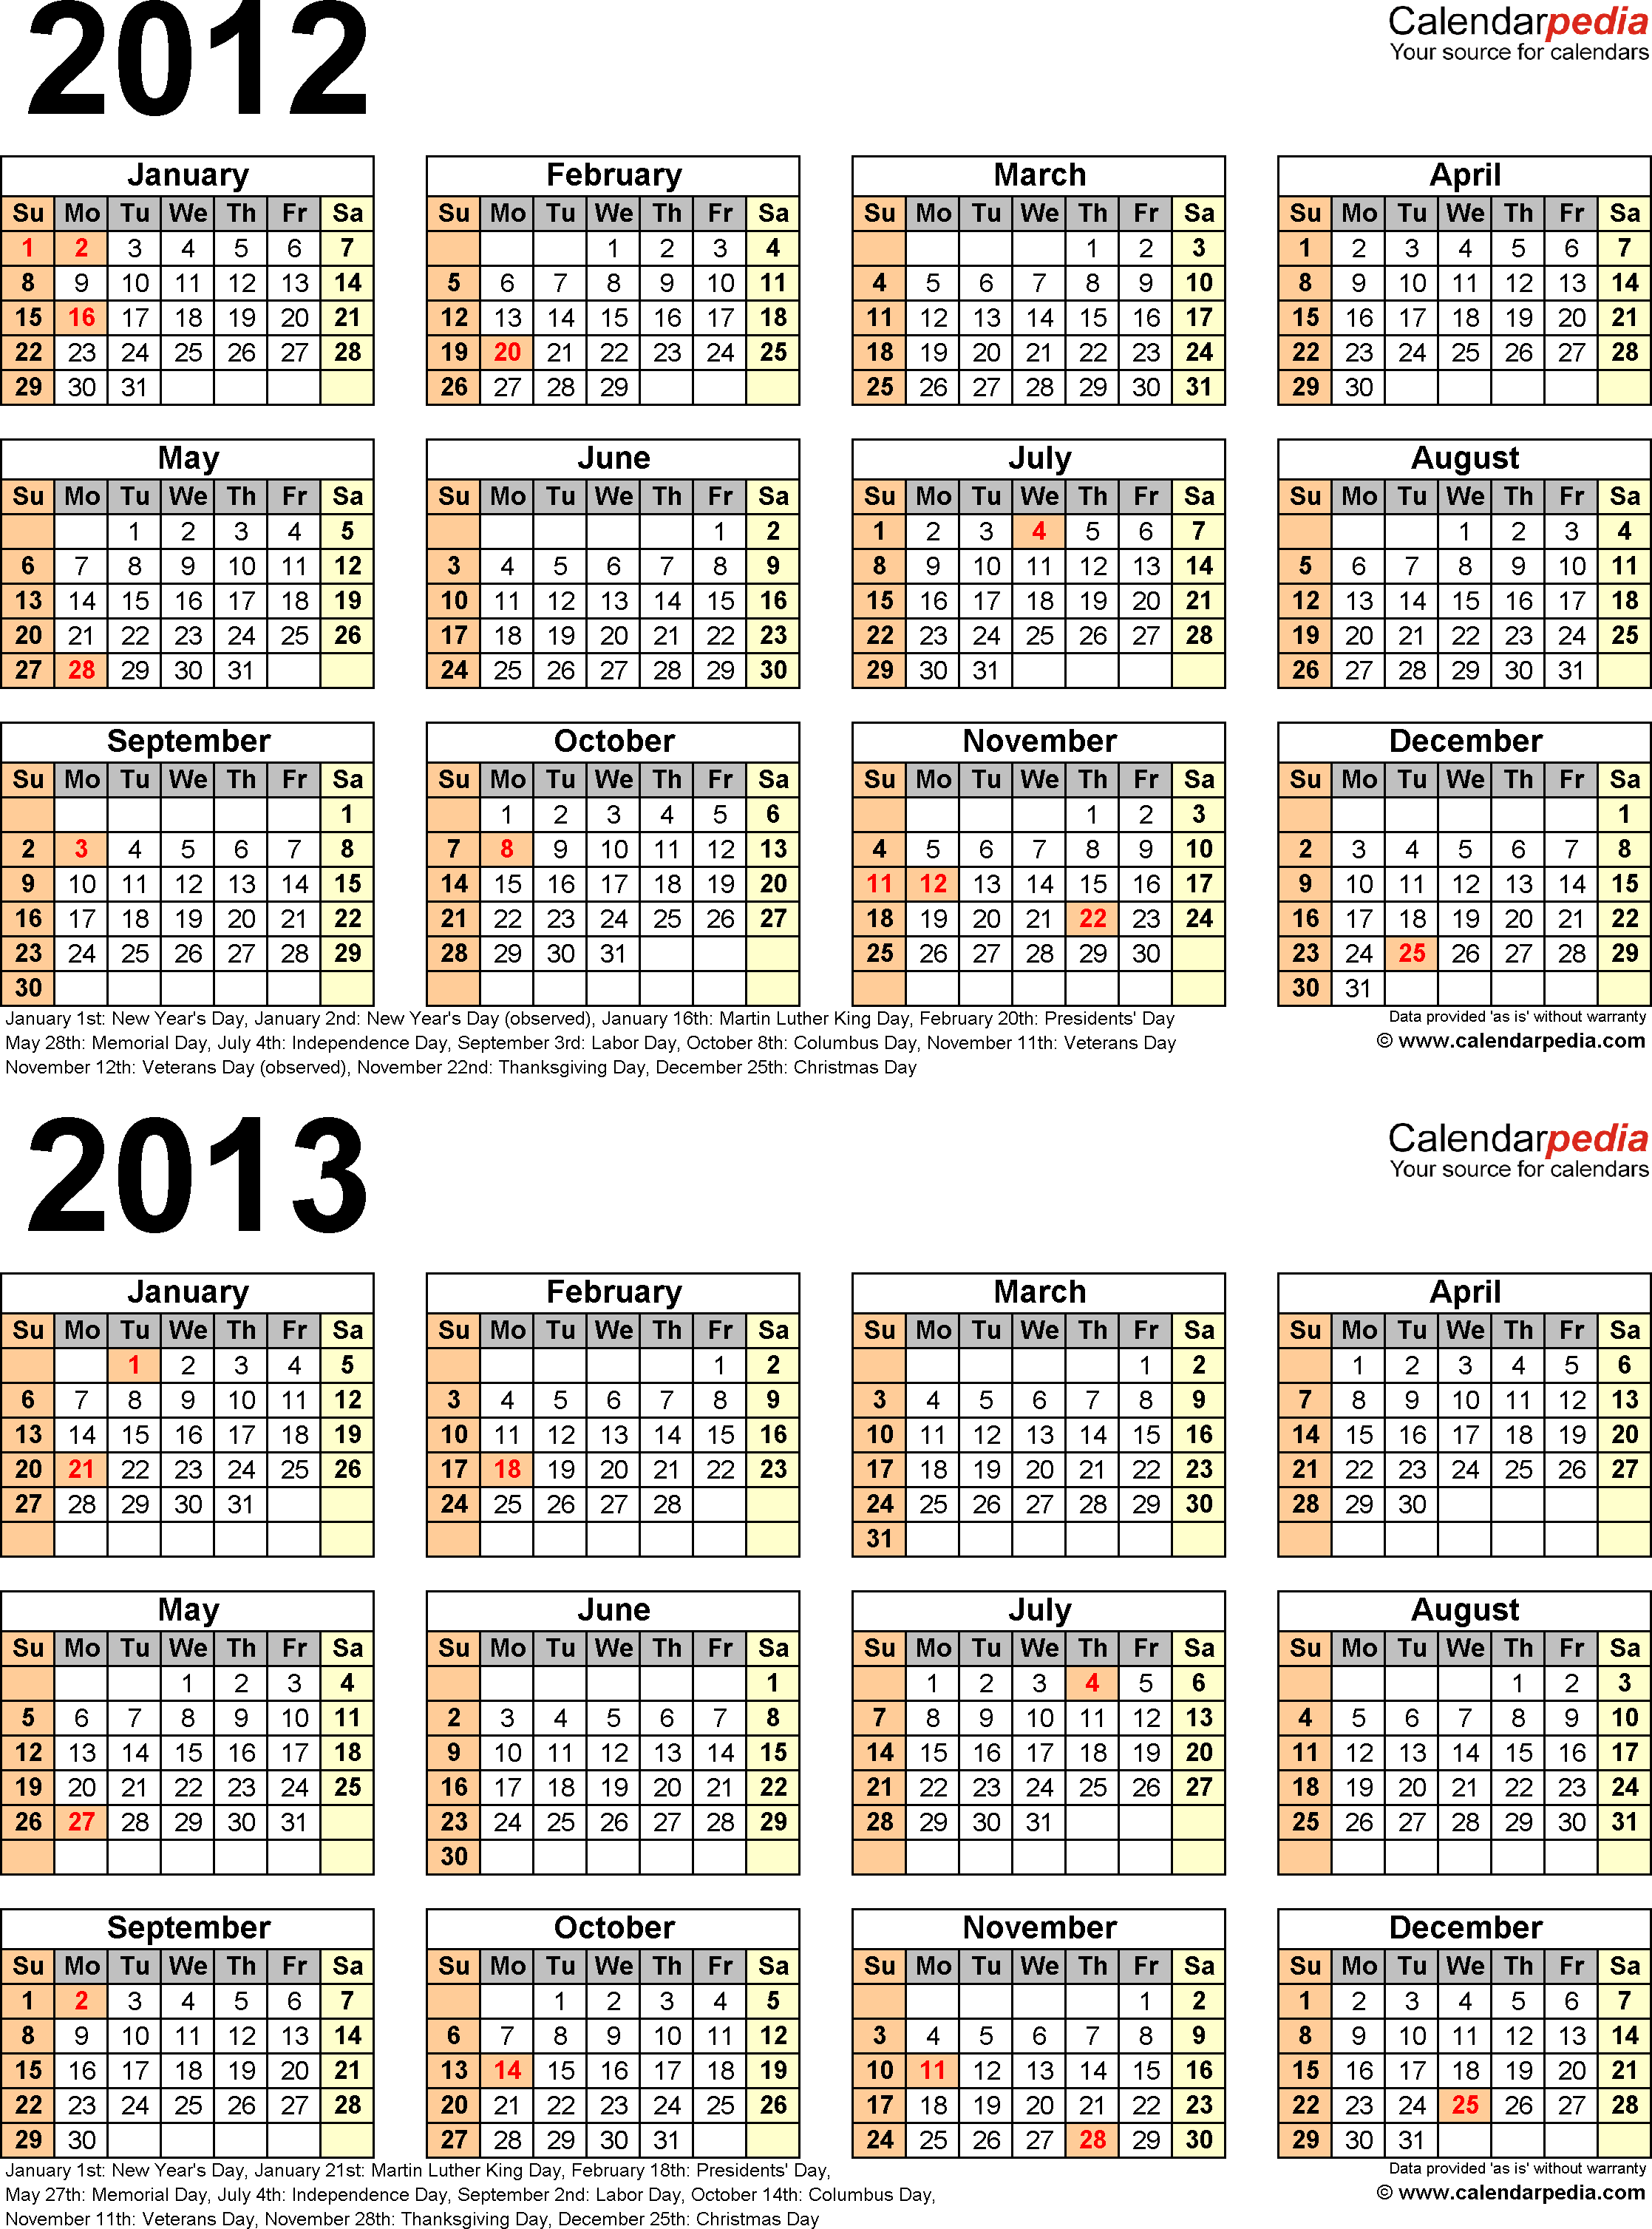 Template 4: PDF template for two year calendar 2012/2013 (portrait orientation, 1 page)